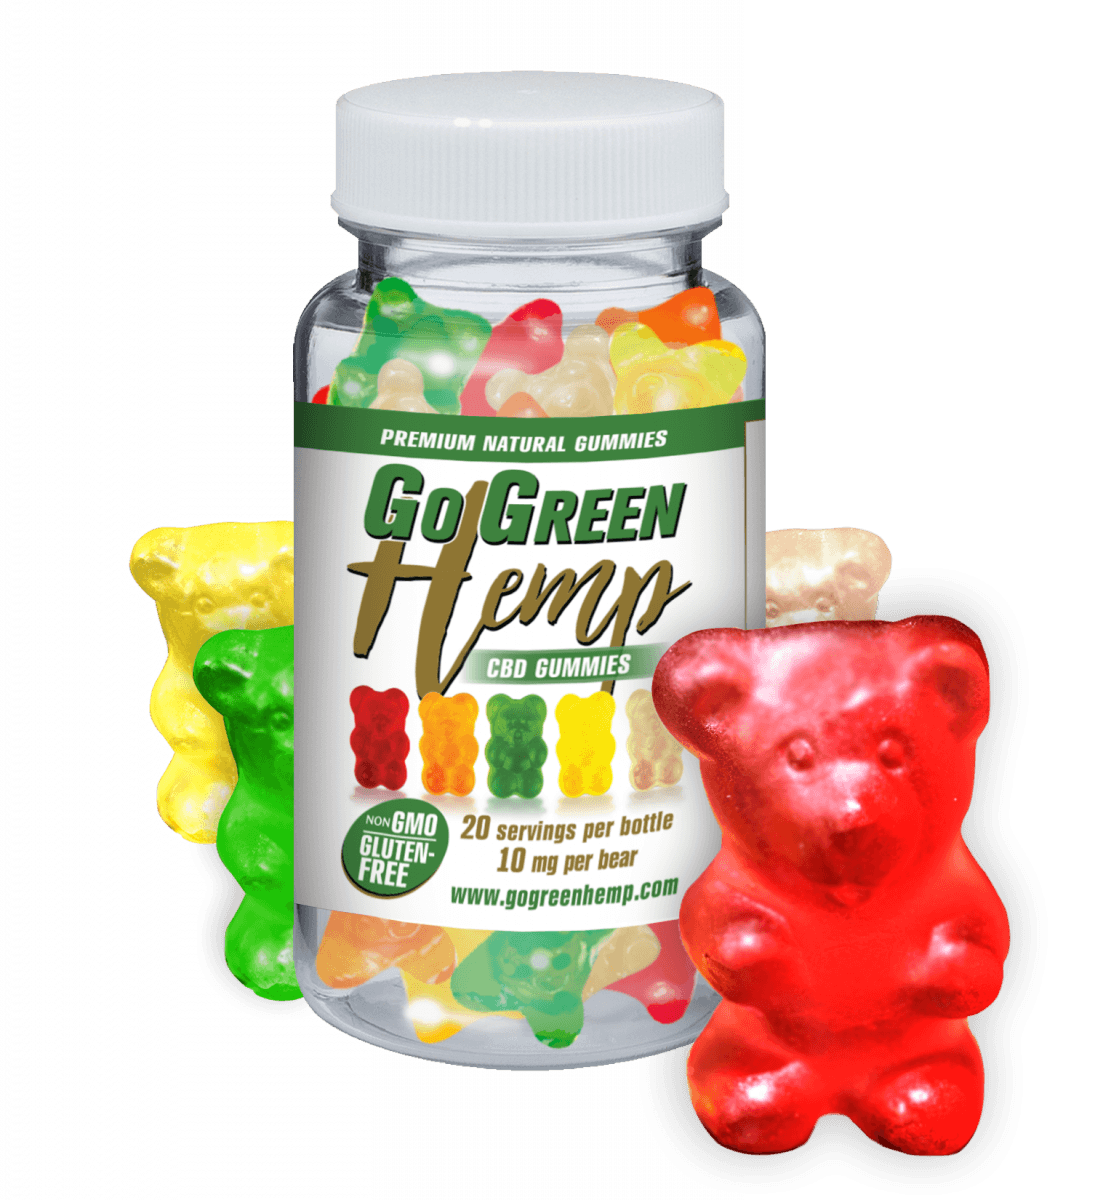 Go Green Hemp CBD Gummy Bears 10mg